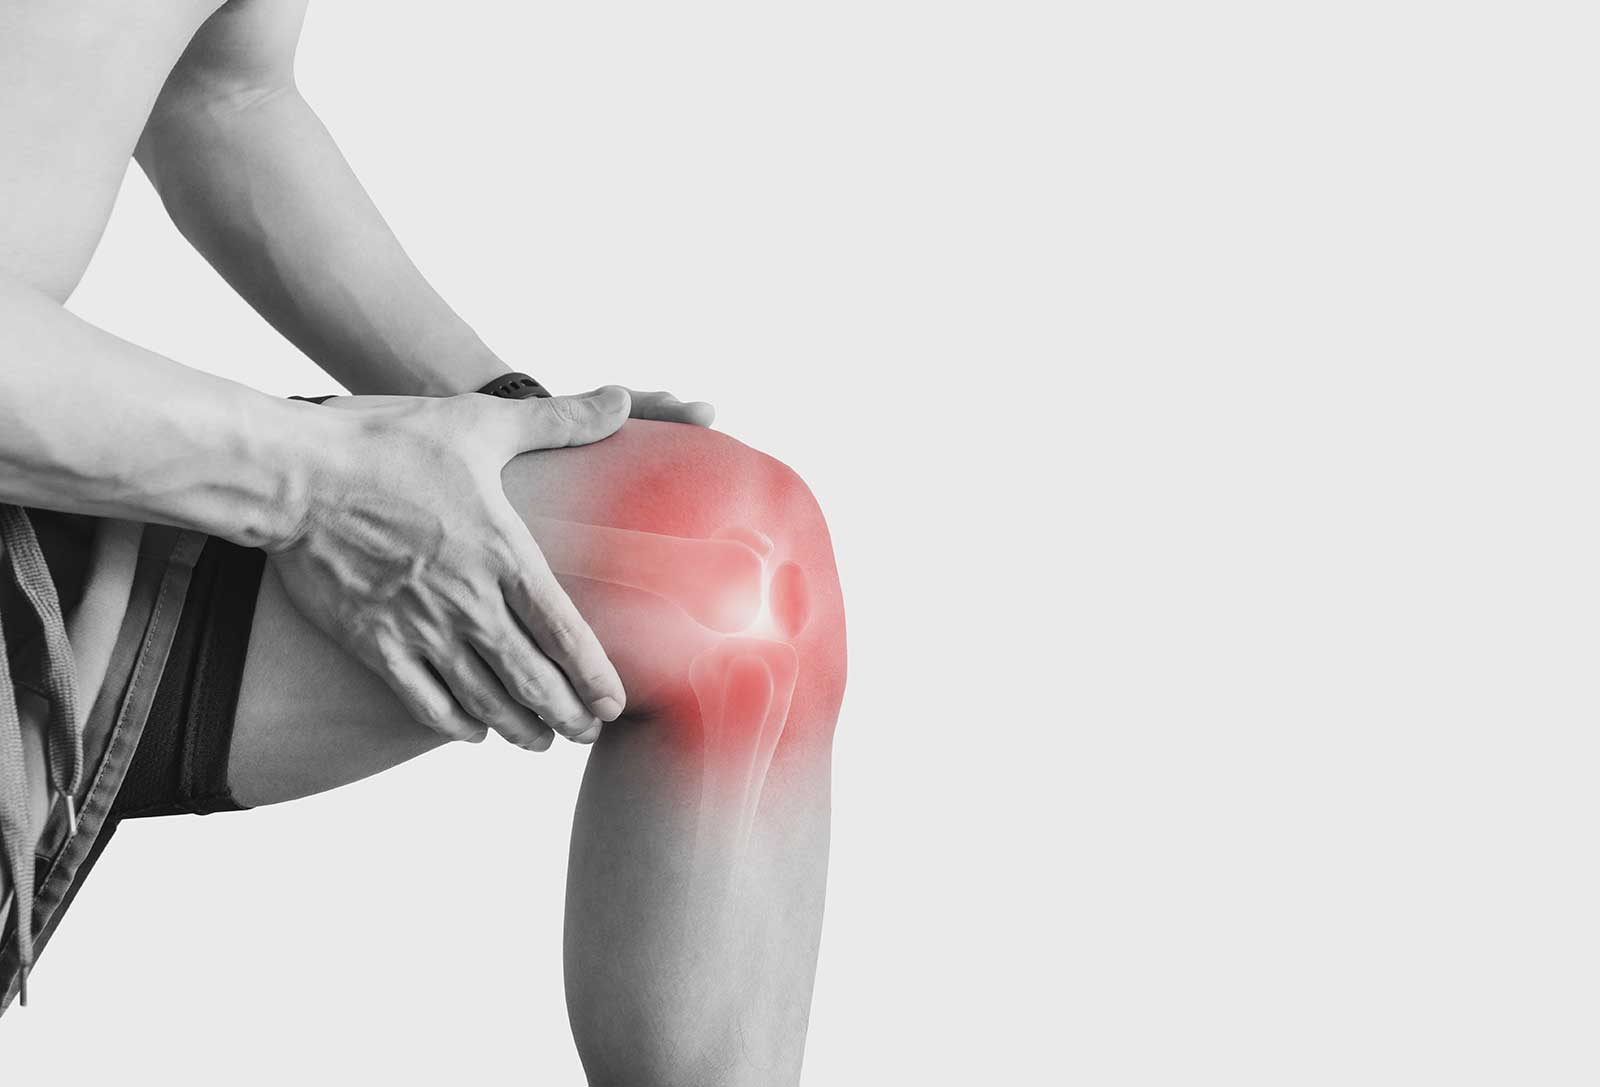 Knee Pain: Types, Causes and Treatment